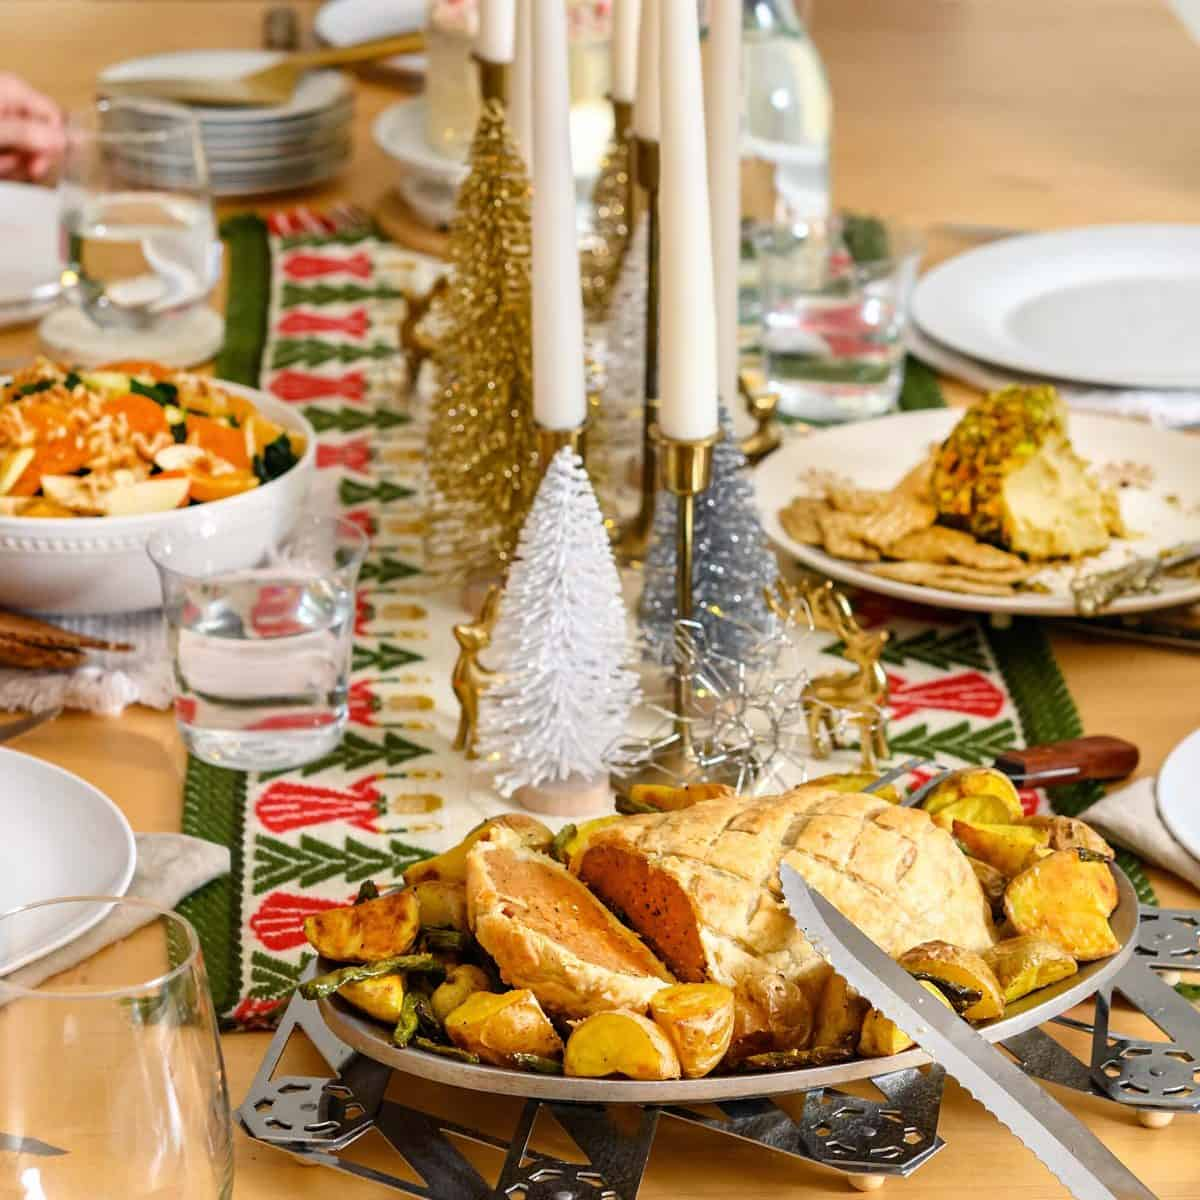 Image of an ultimate vegan holiday dinner spread with table runner and dishes, including salad and sliced seitan Wellington